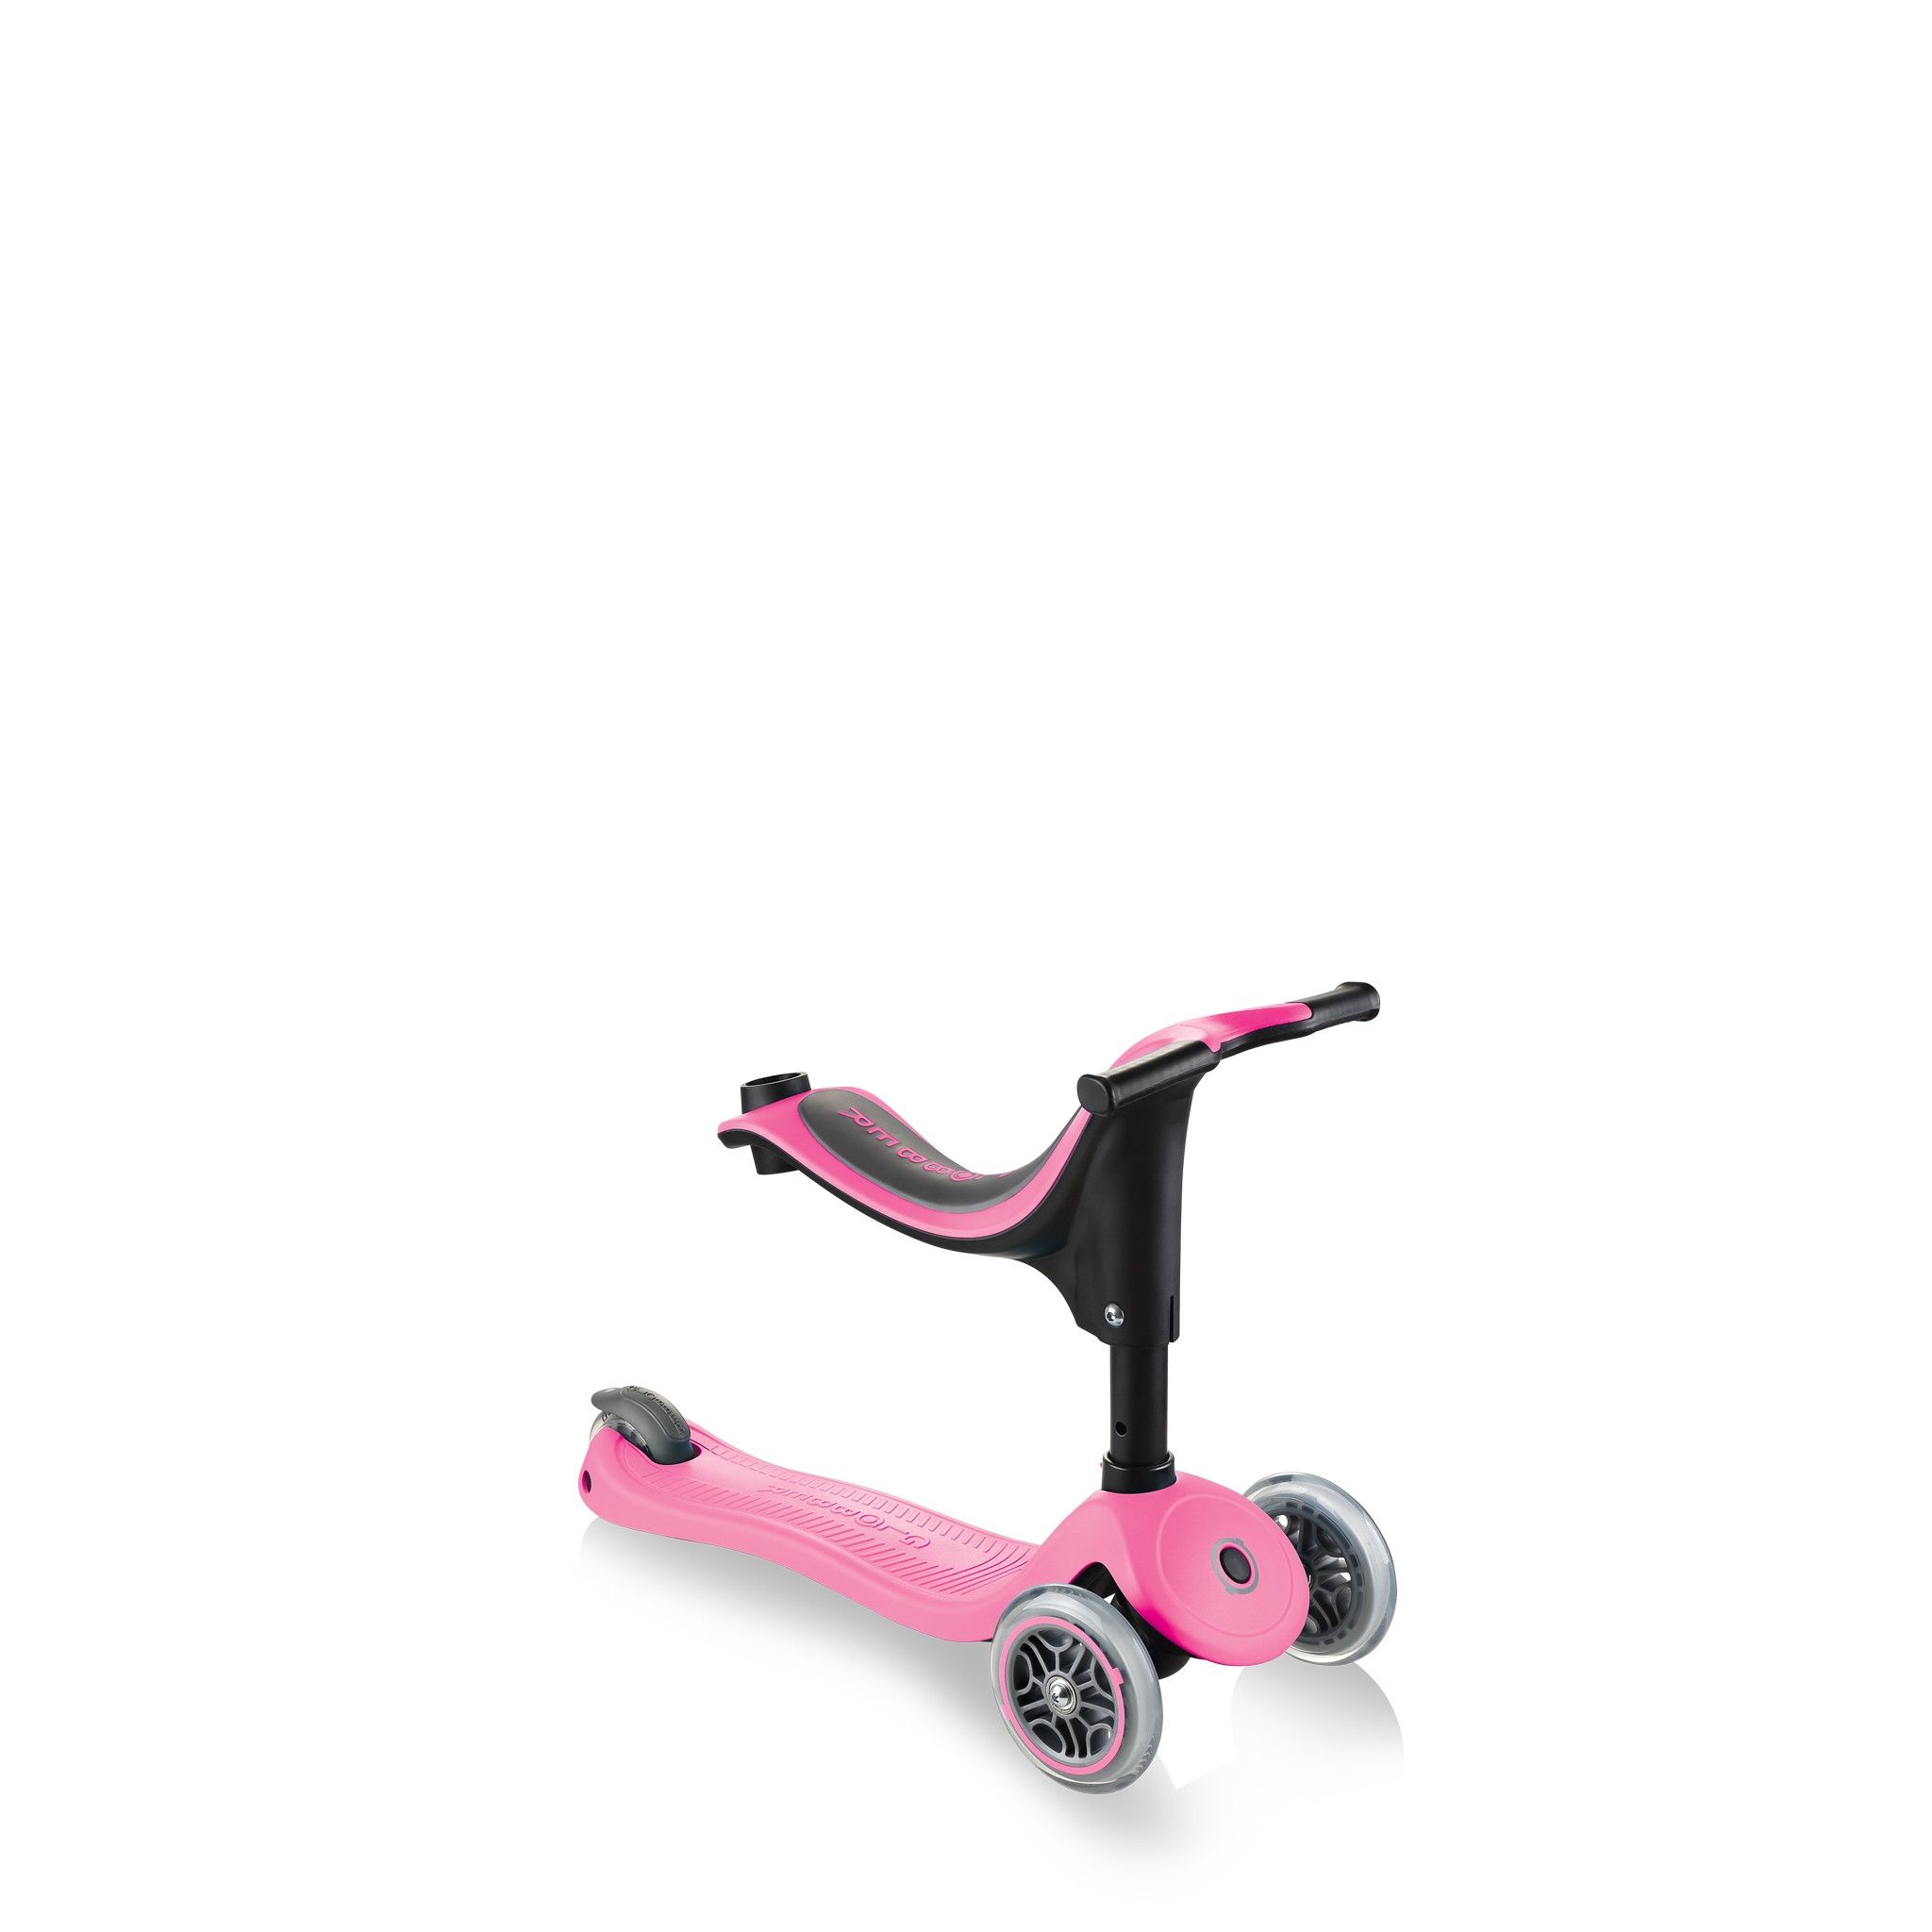 GO-UP-SPORTY-PLUS-scooter-with-seat-walking-bike-mode_deep-pink